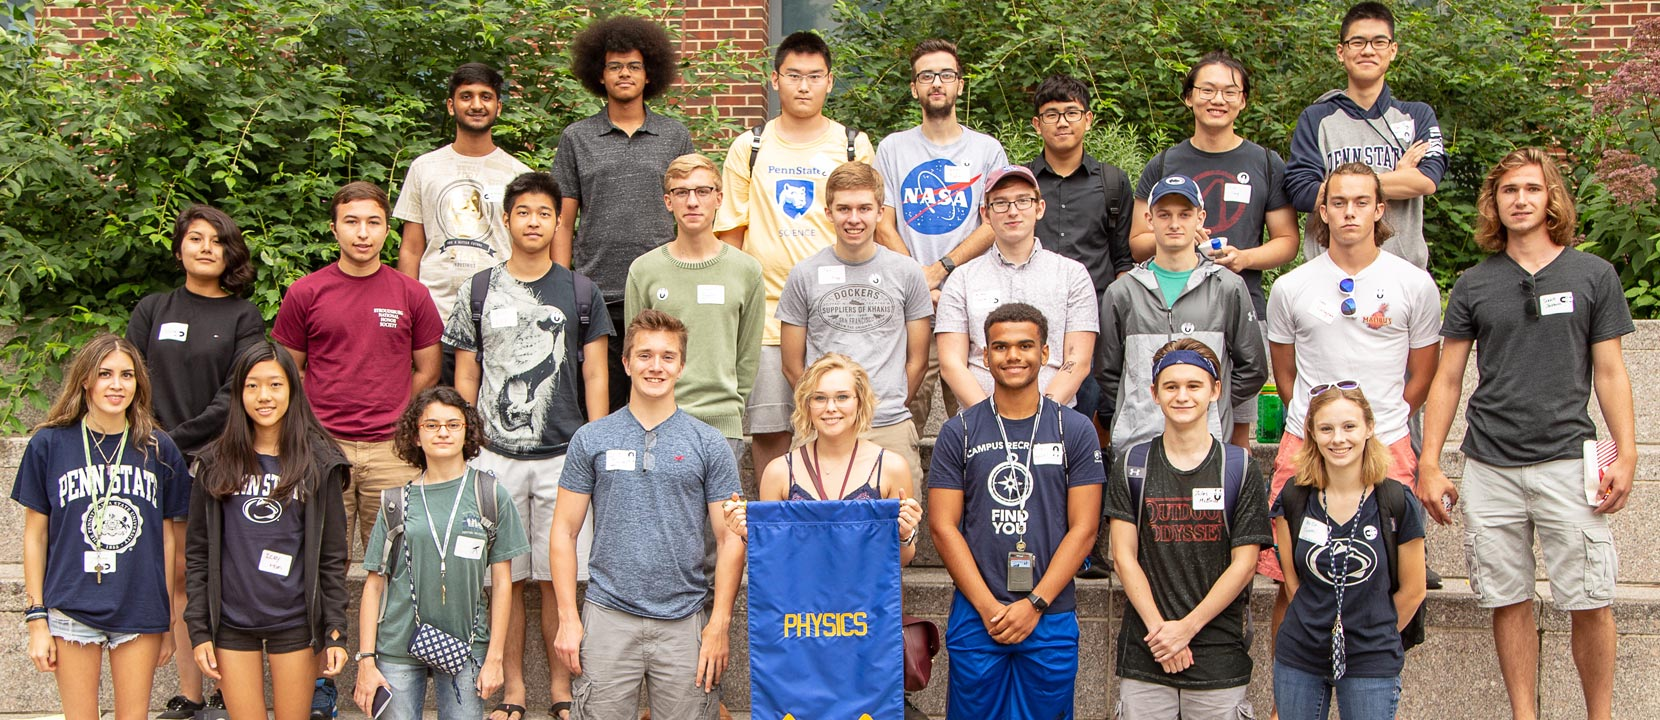 A new class of physics students the represent our commitment to a welcoming environment for everyone.